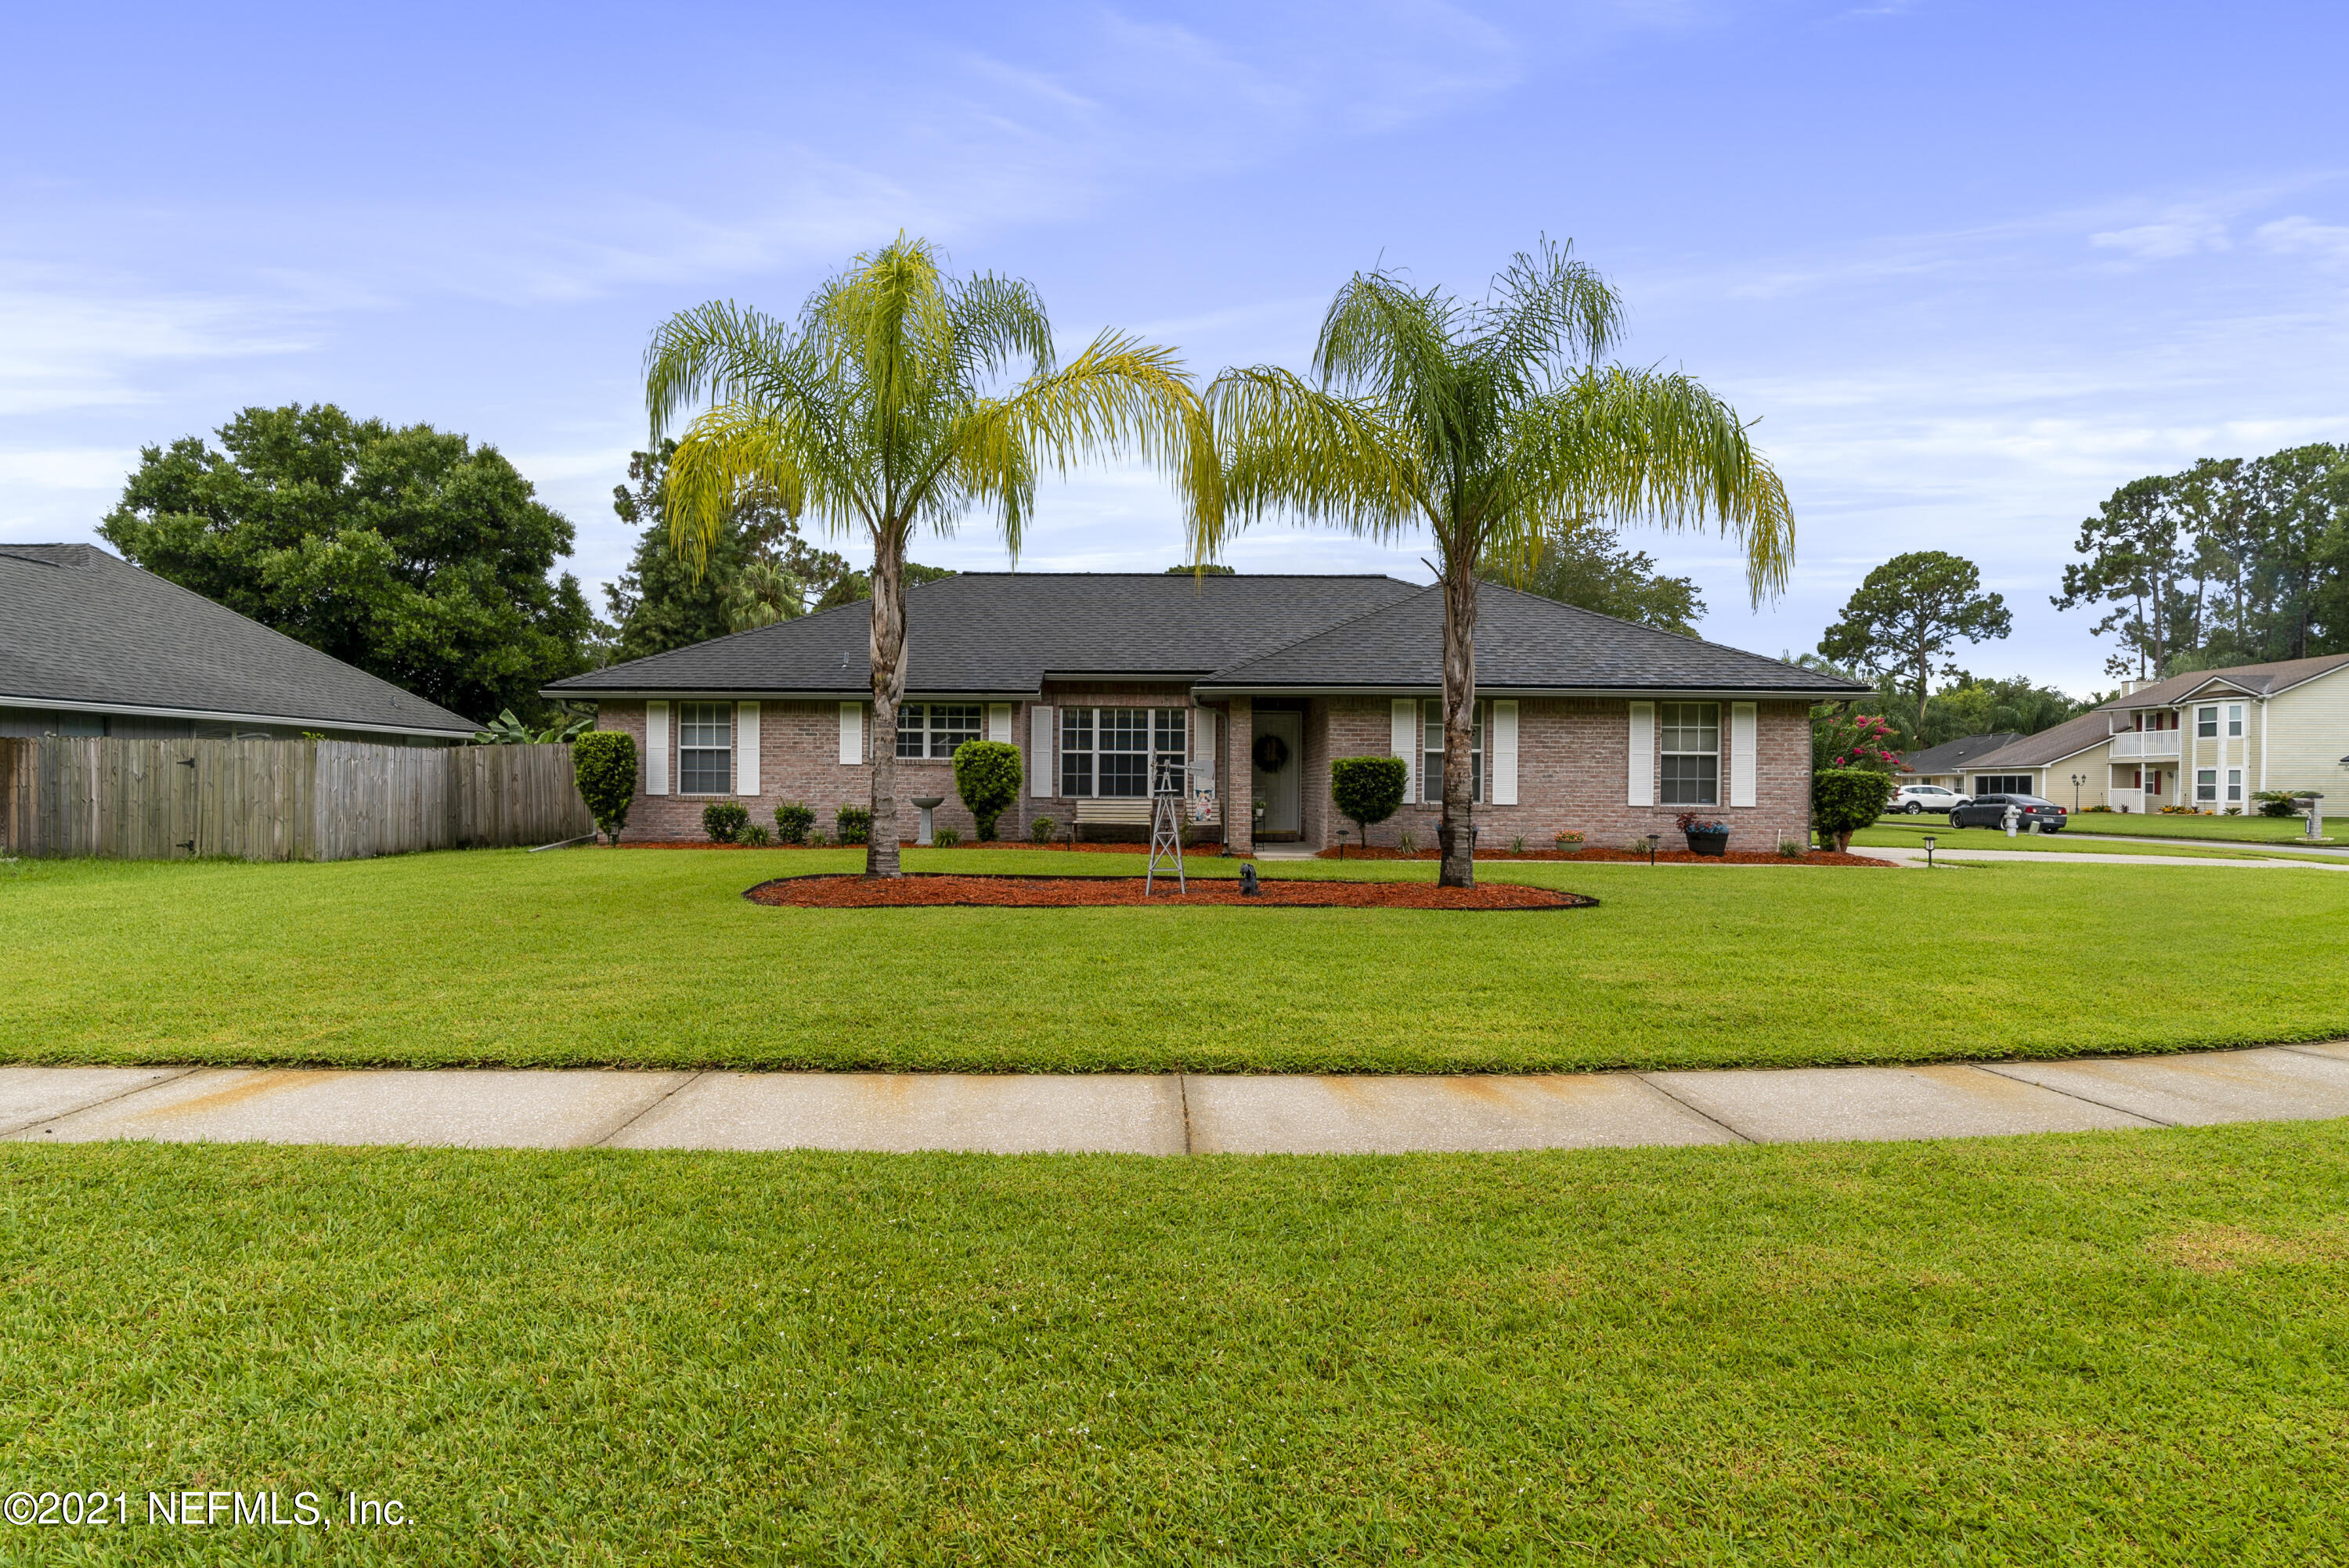 1679 TALL TIMBER, FLEMING ISLAND, FLORIDA 32003, 3 Bedrooms Bedrooms, ,2 BathroomsBathrooms,Residential,For sale,TALL TIMBER,1121722